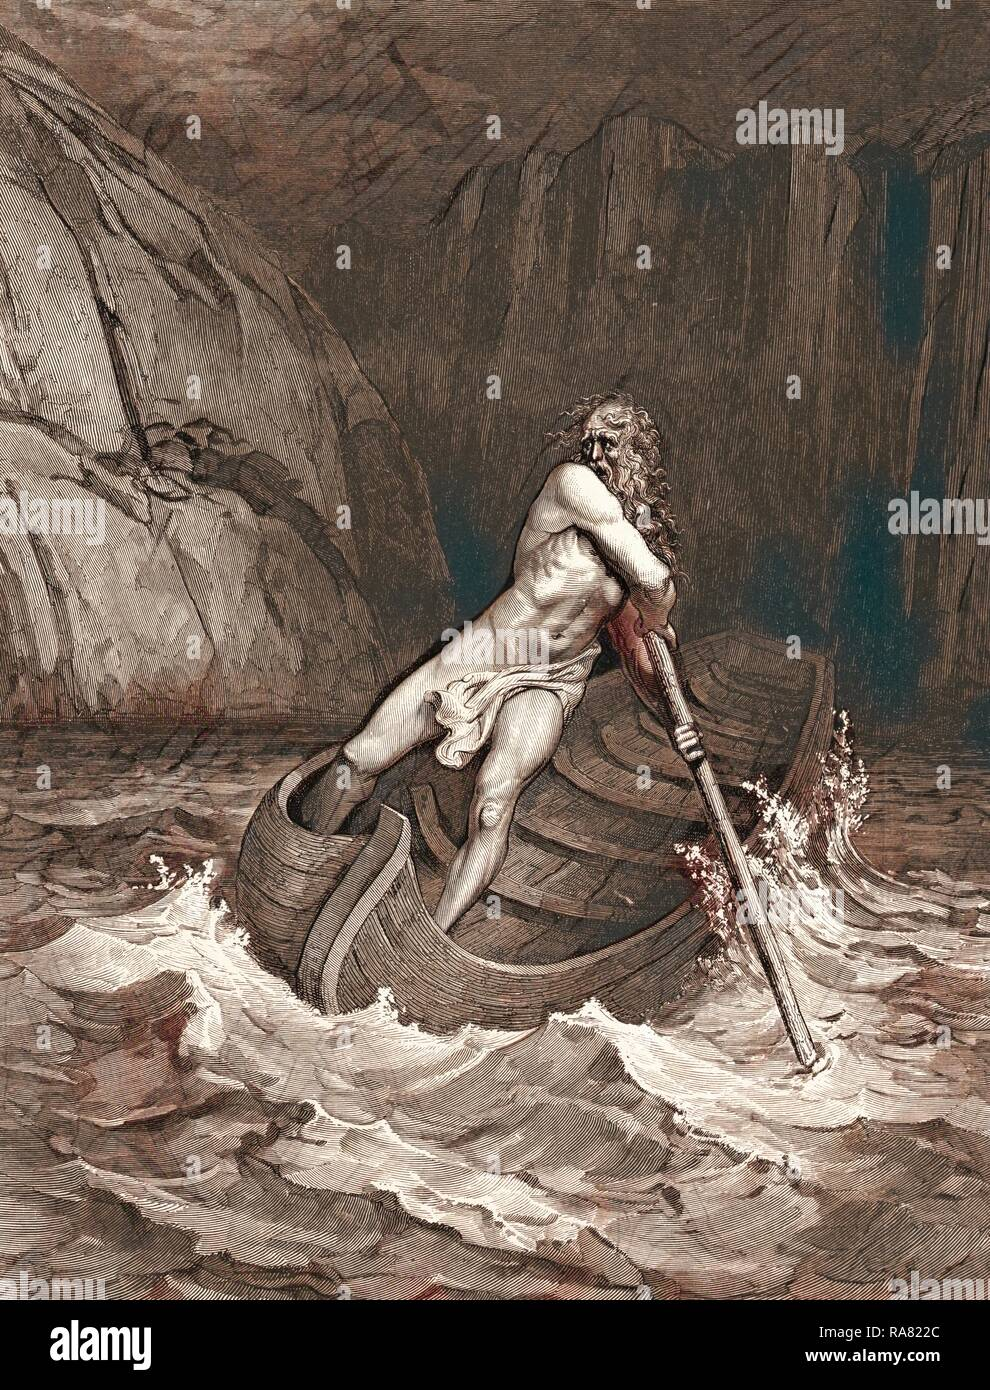 Charon, the Ferryman of Hell, 1861 by Gustave Doré, 1832 - 1883, French. Engraving for the Inferno by Dante reimagined - Stock Image